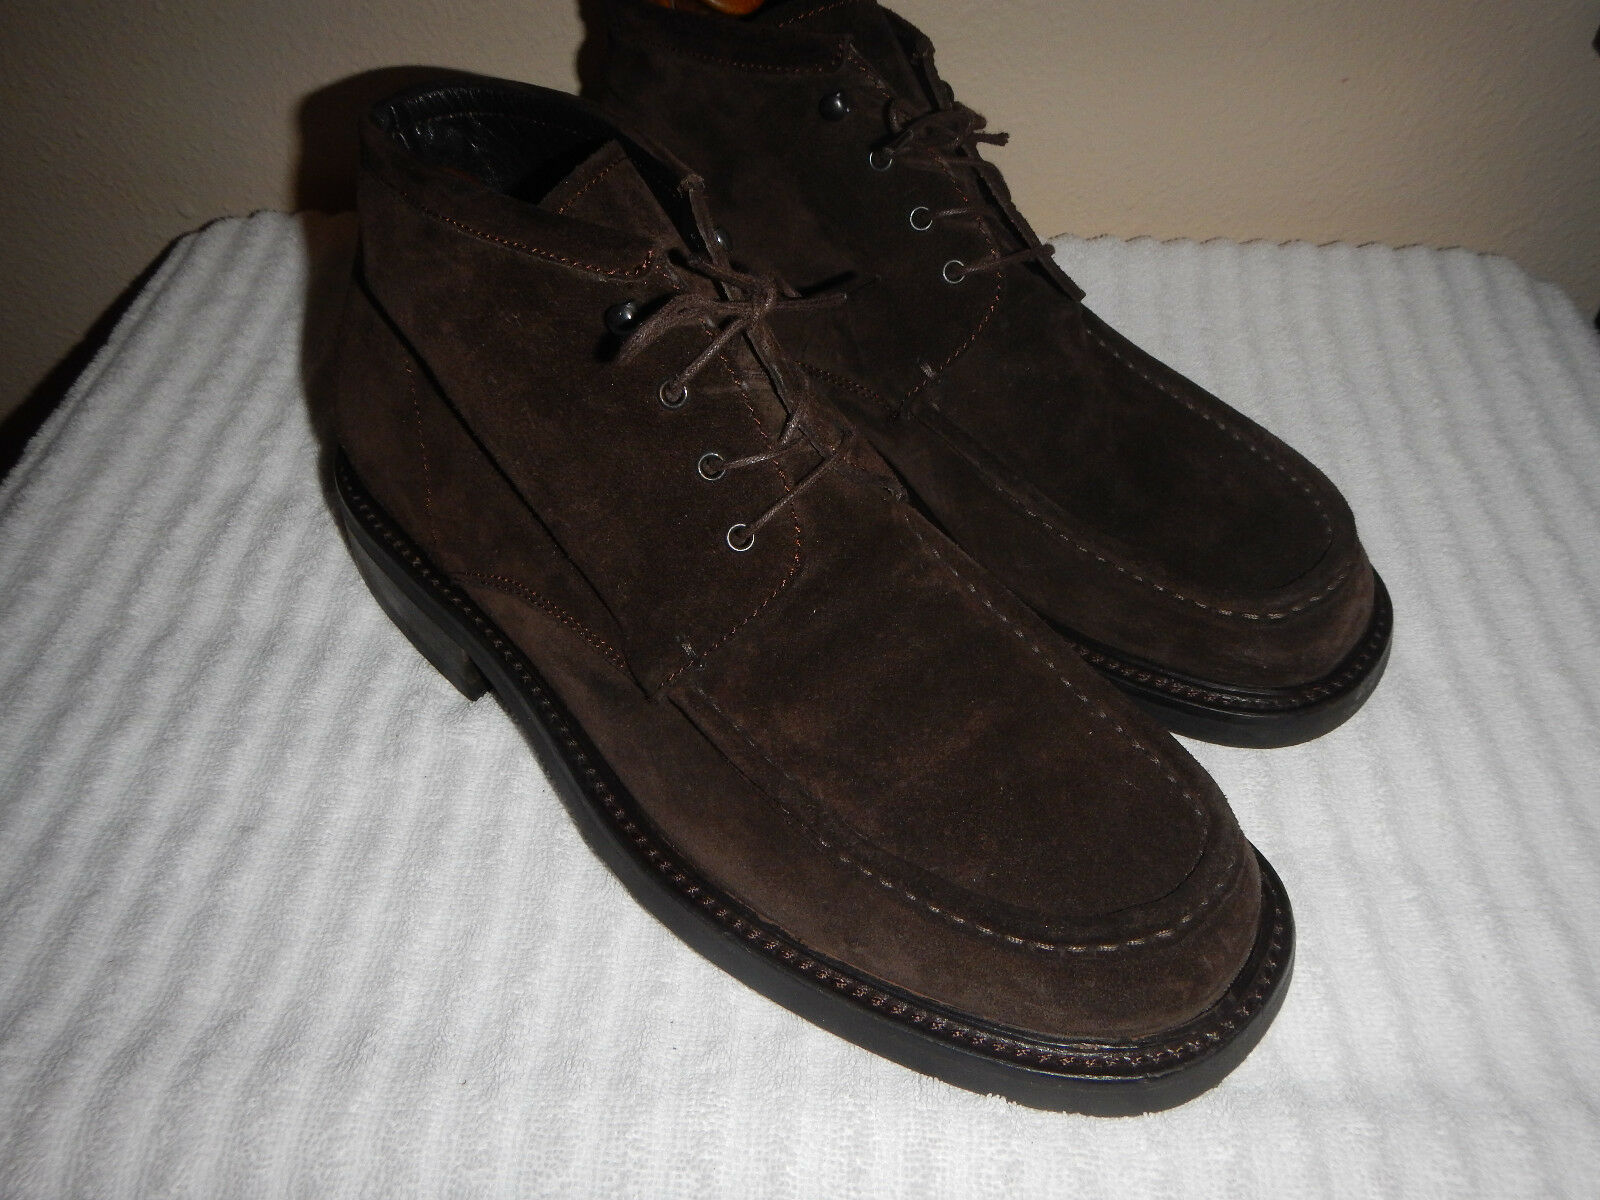 Fieramosca & Co Men's Dark Brown Suede Leather Moc Toe Lace & Hook shoes 9M